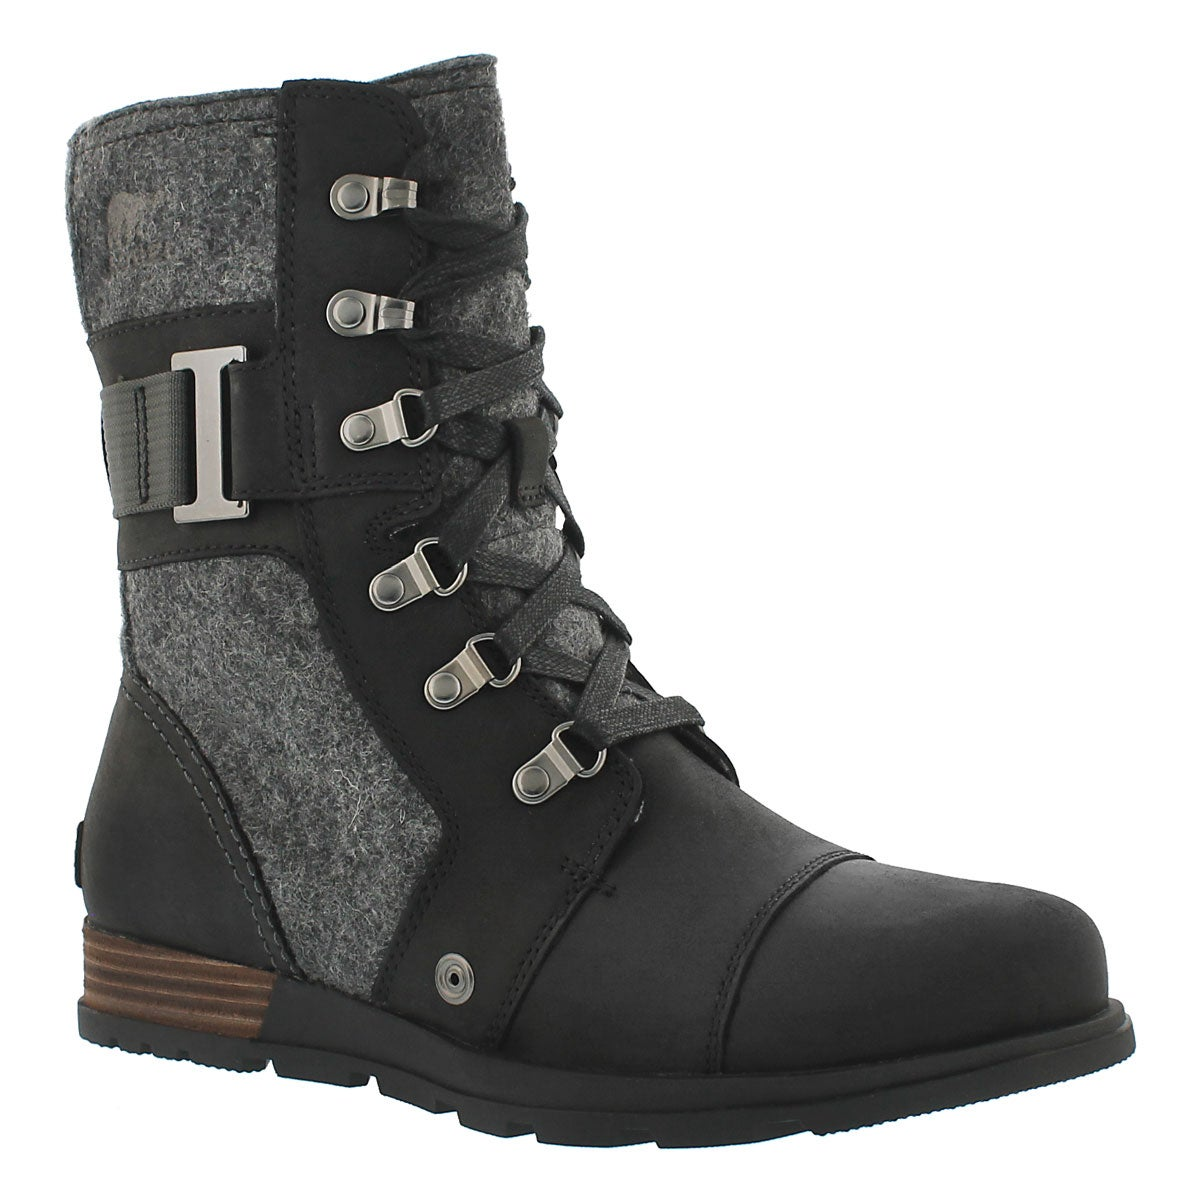 Women's MAJOR CARLY black lace up boots